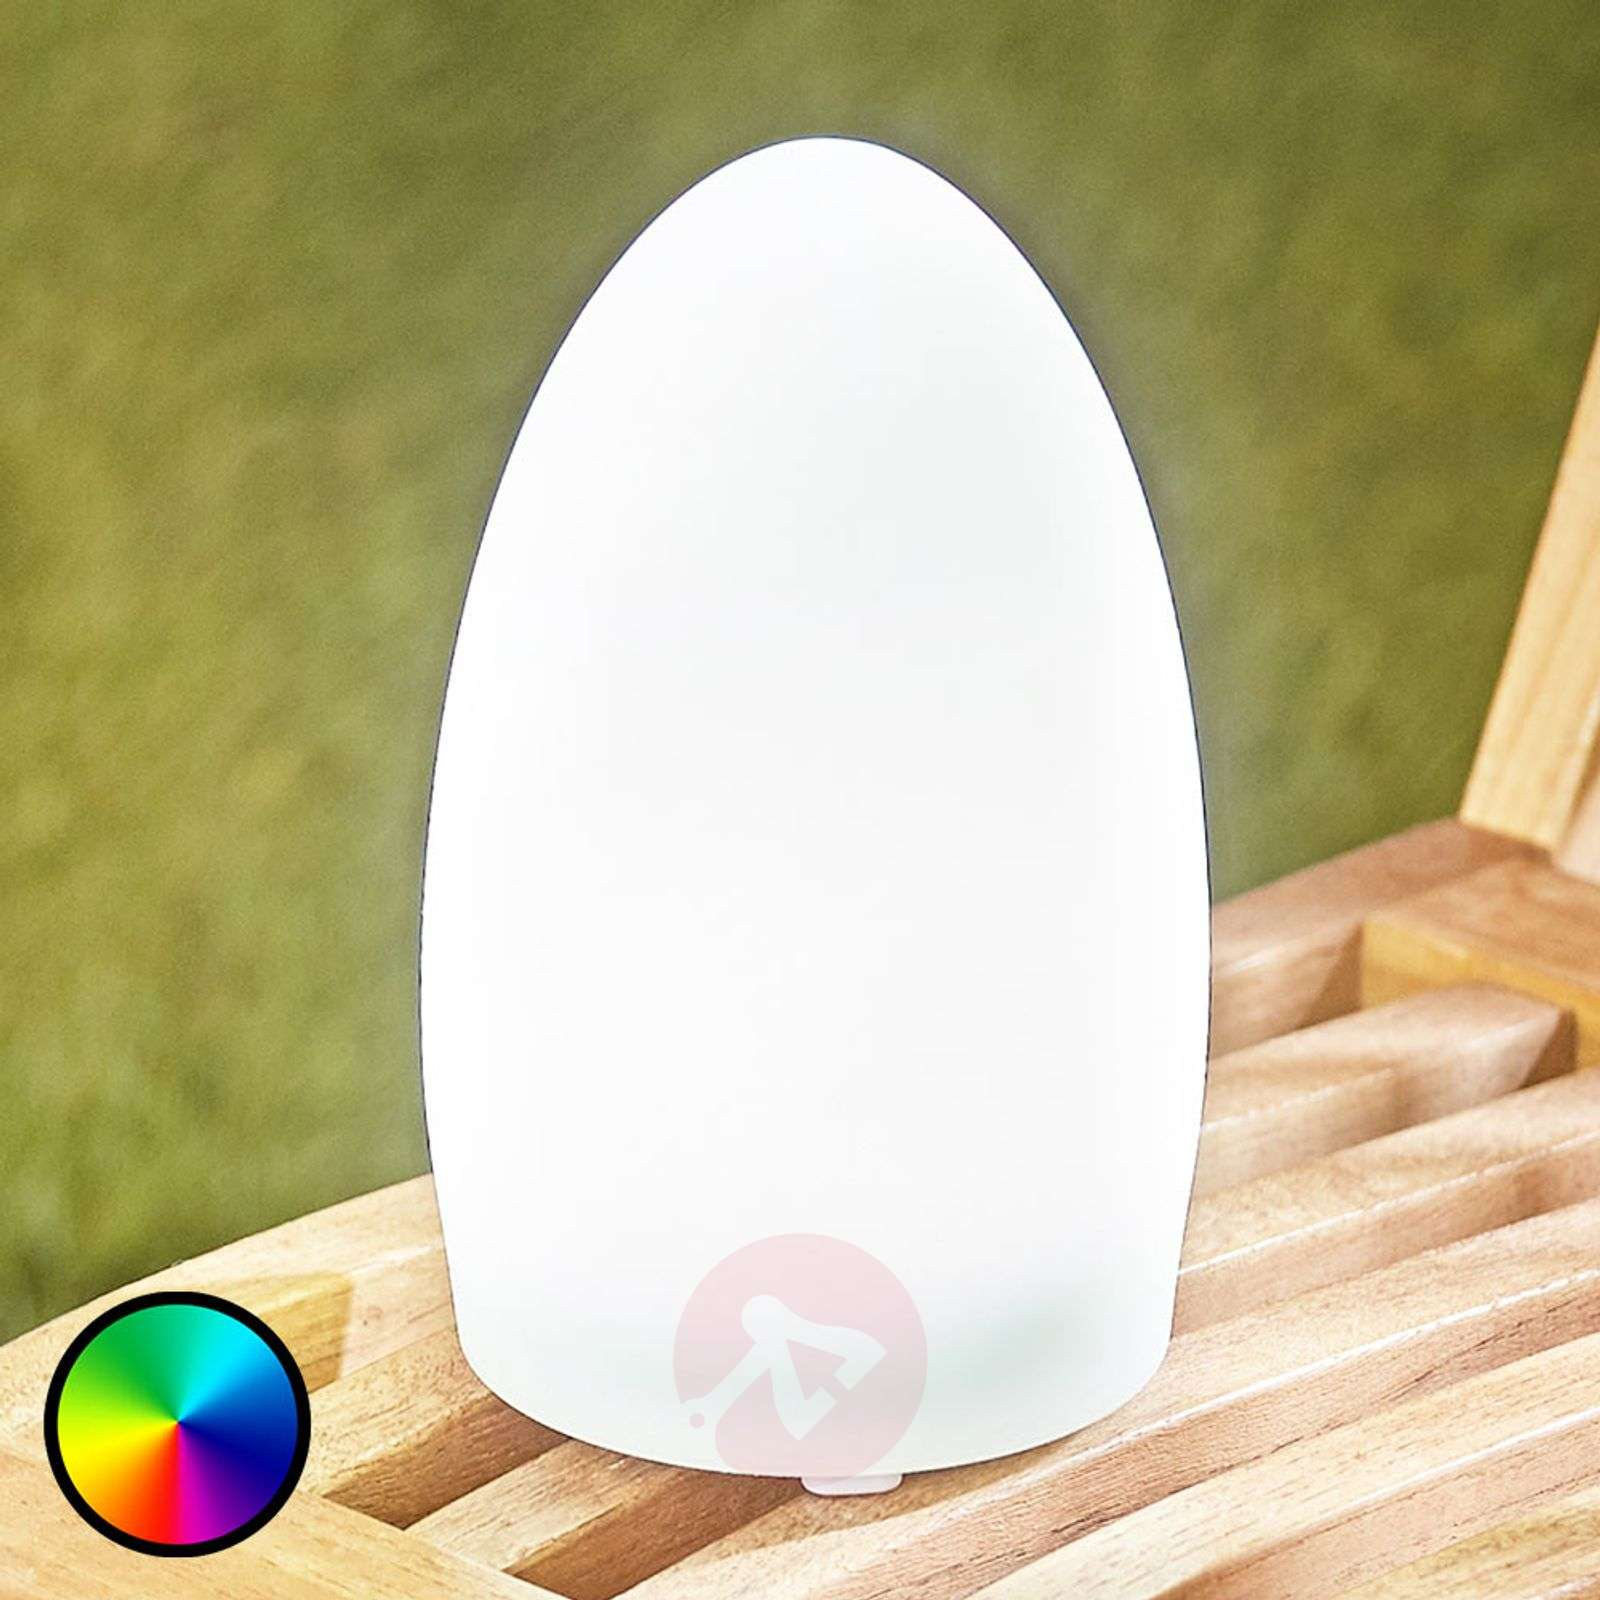 RGB LED decorative light Solay for outdoors, USB-6729004-01